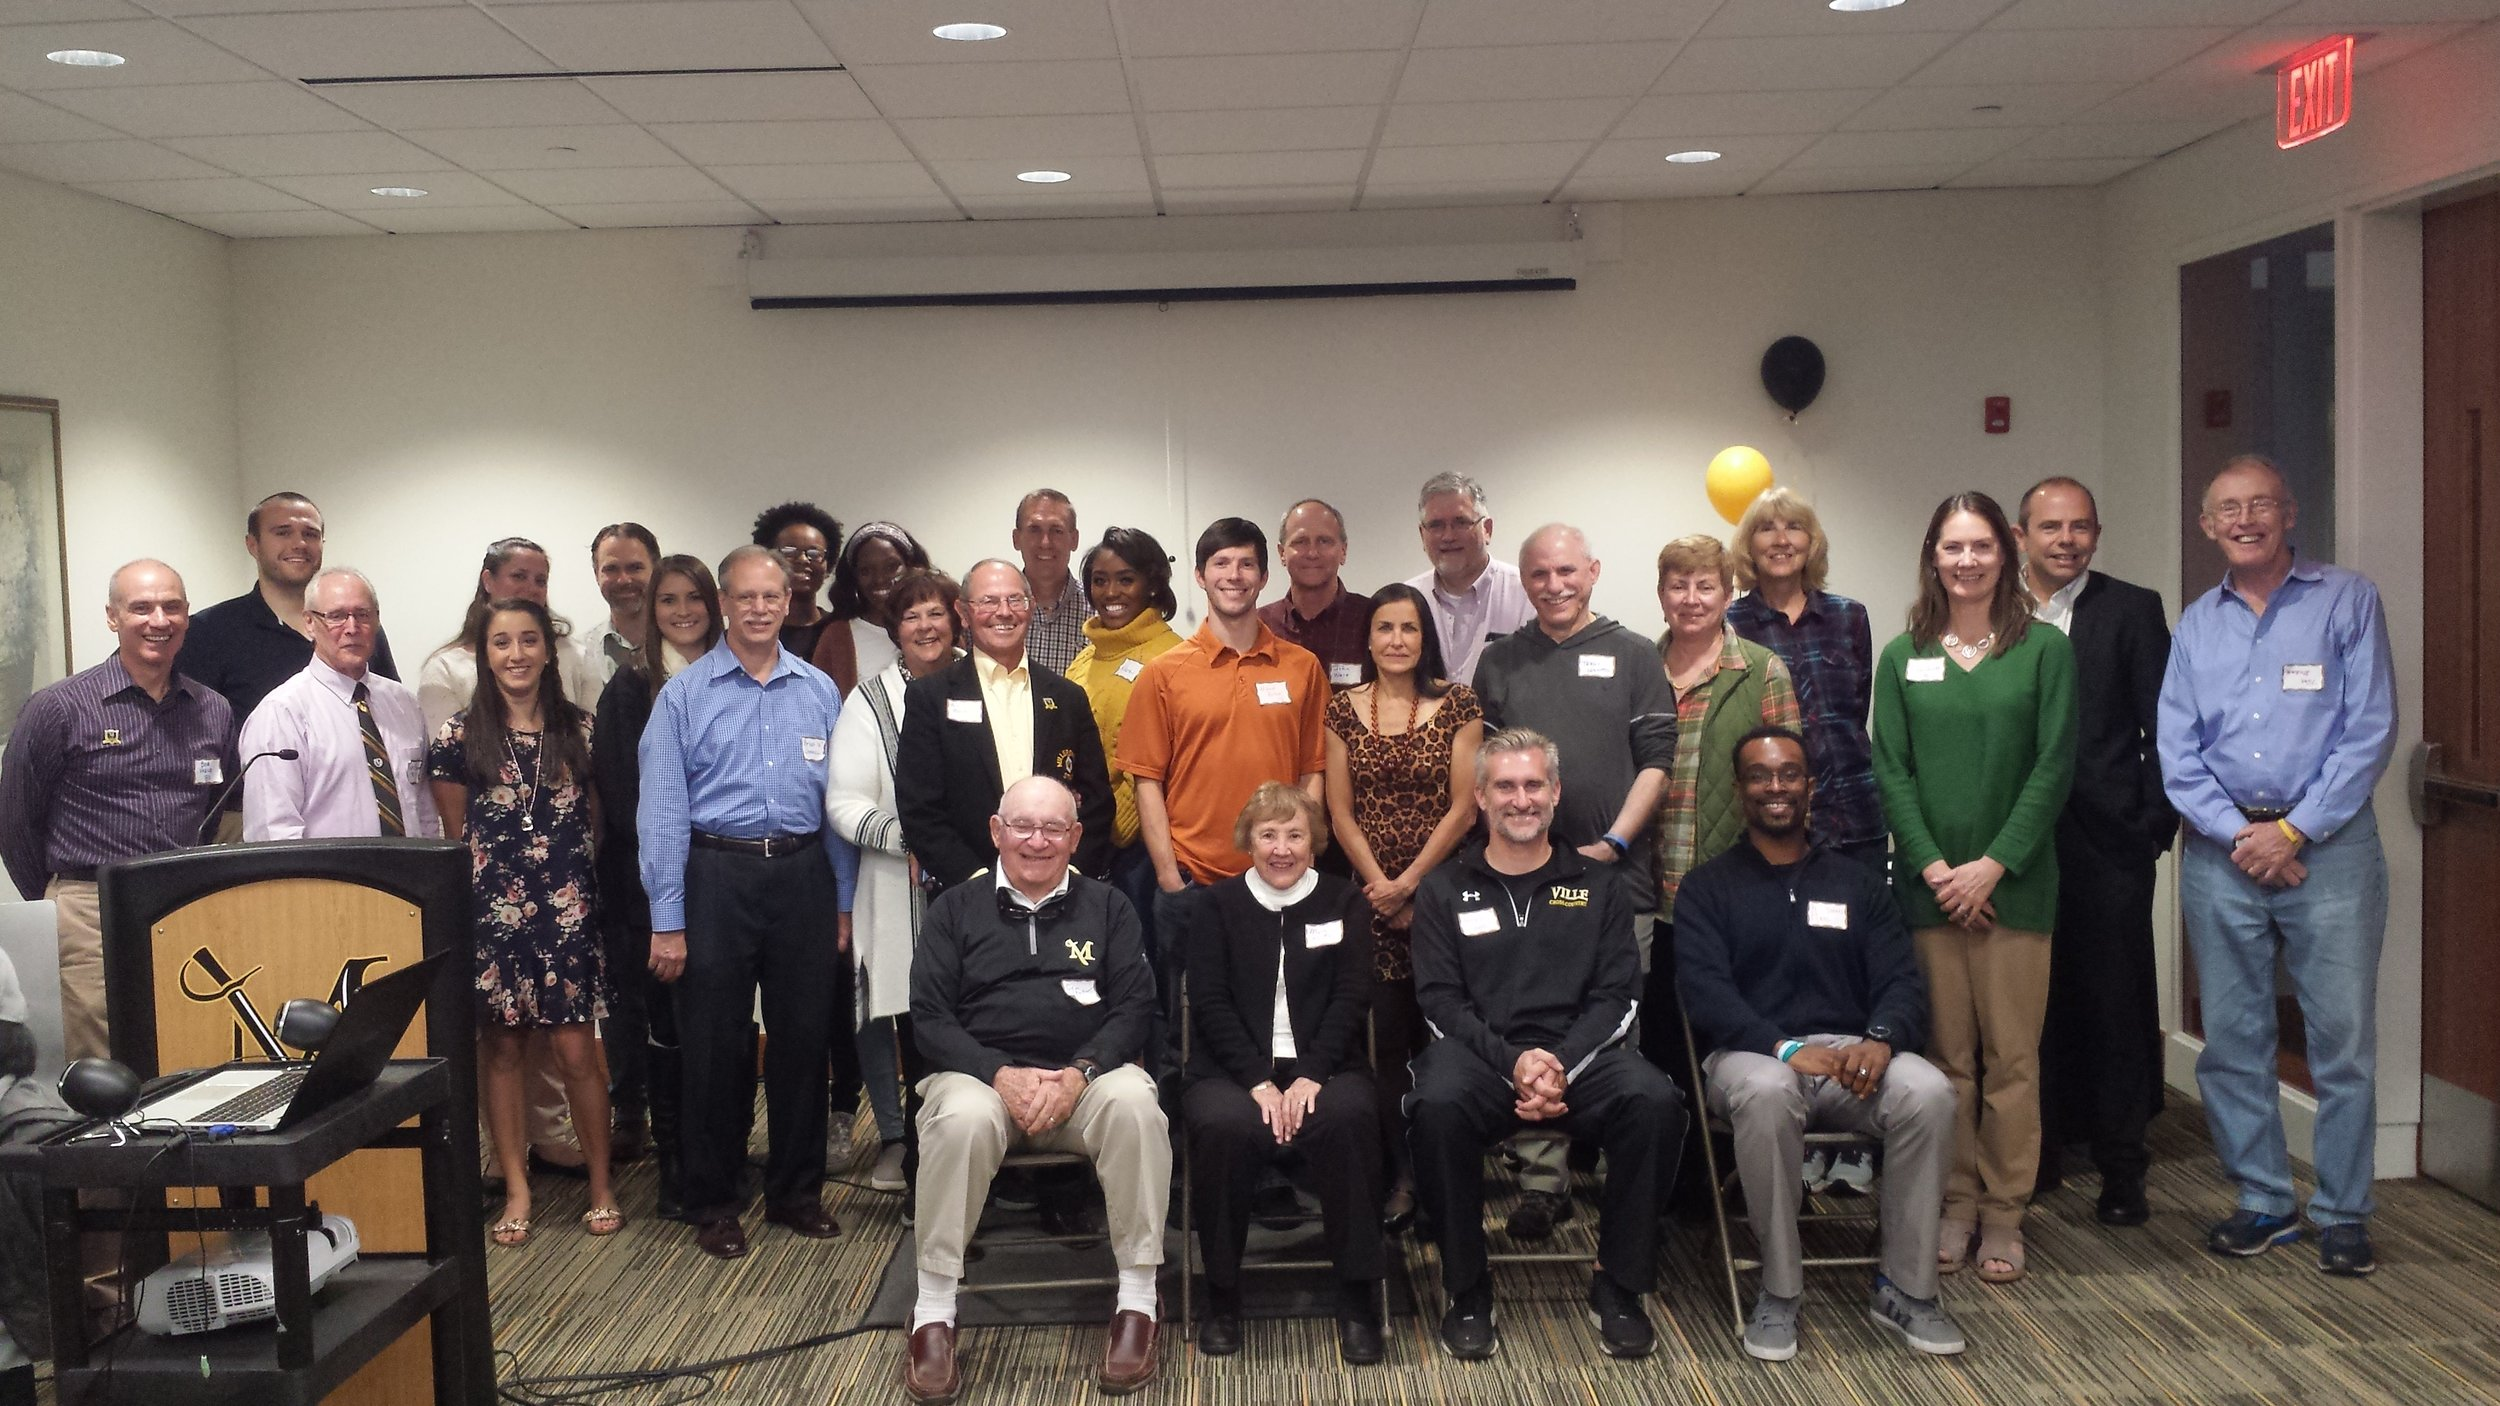 Inaugural Combined Reunion, October 13, 2018